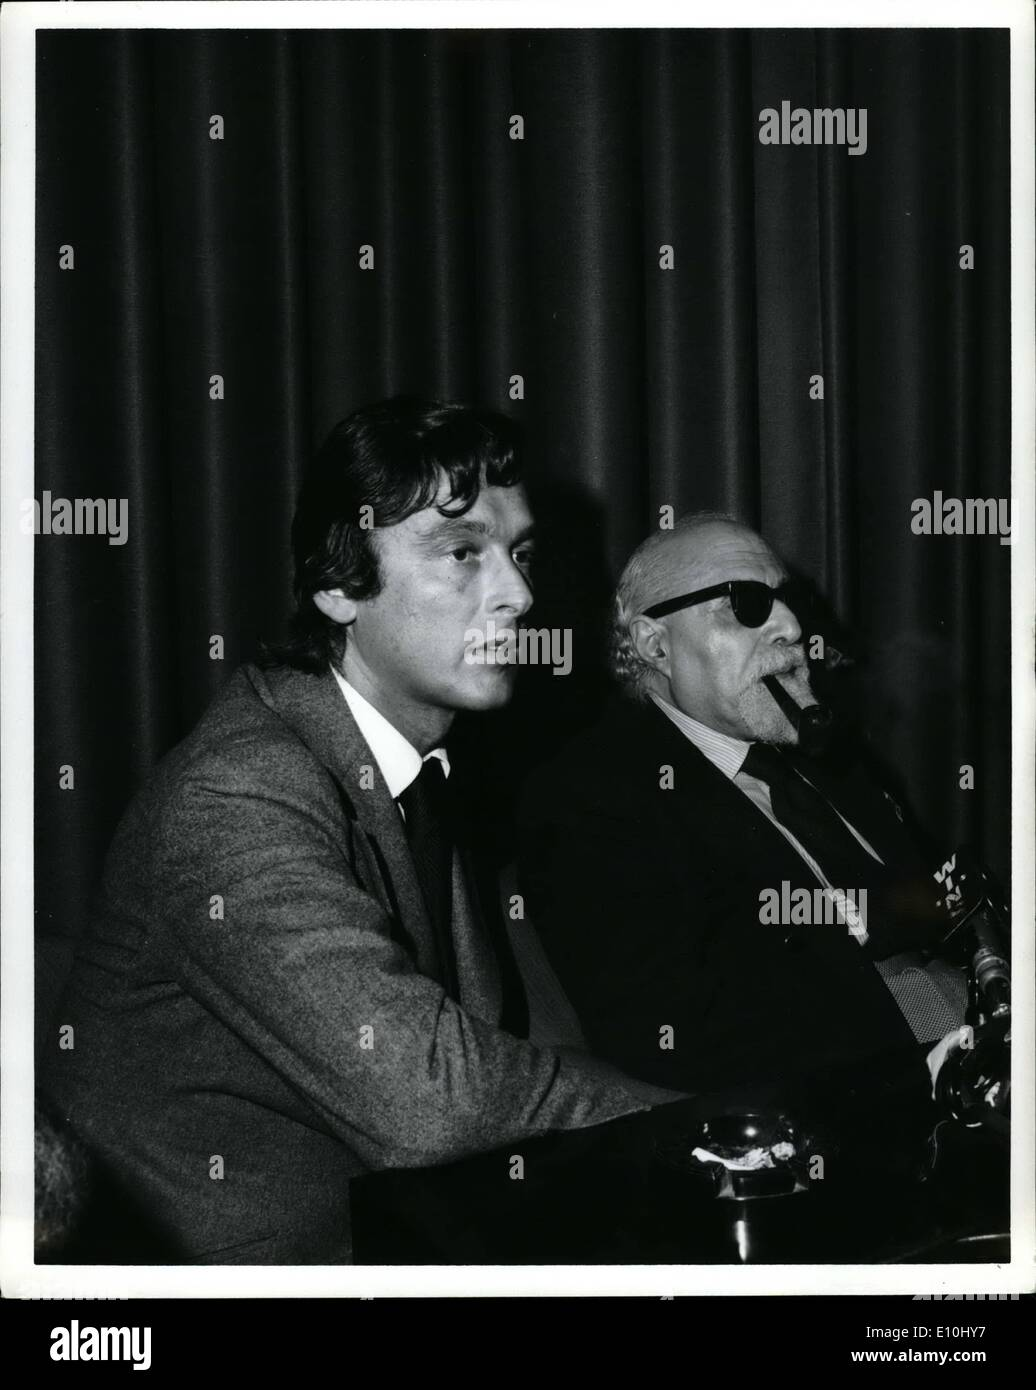 Dec. 12, 1972 - Based on Ladislas Fargo's book tentatively titled ''The aftermath'', paramount pictures will produce a major picture. This was announced at a press conference today where the Martin Borman case and details of the forthcoming book a film were discussed. photo shows from r to ladislas faraco Robert Evans, exec, v.p.in charge of world-wide production (he is the son even picon and husband of all McGuire) - Stock Image